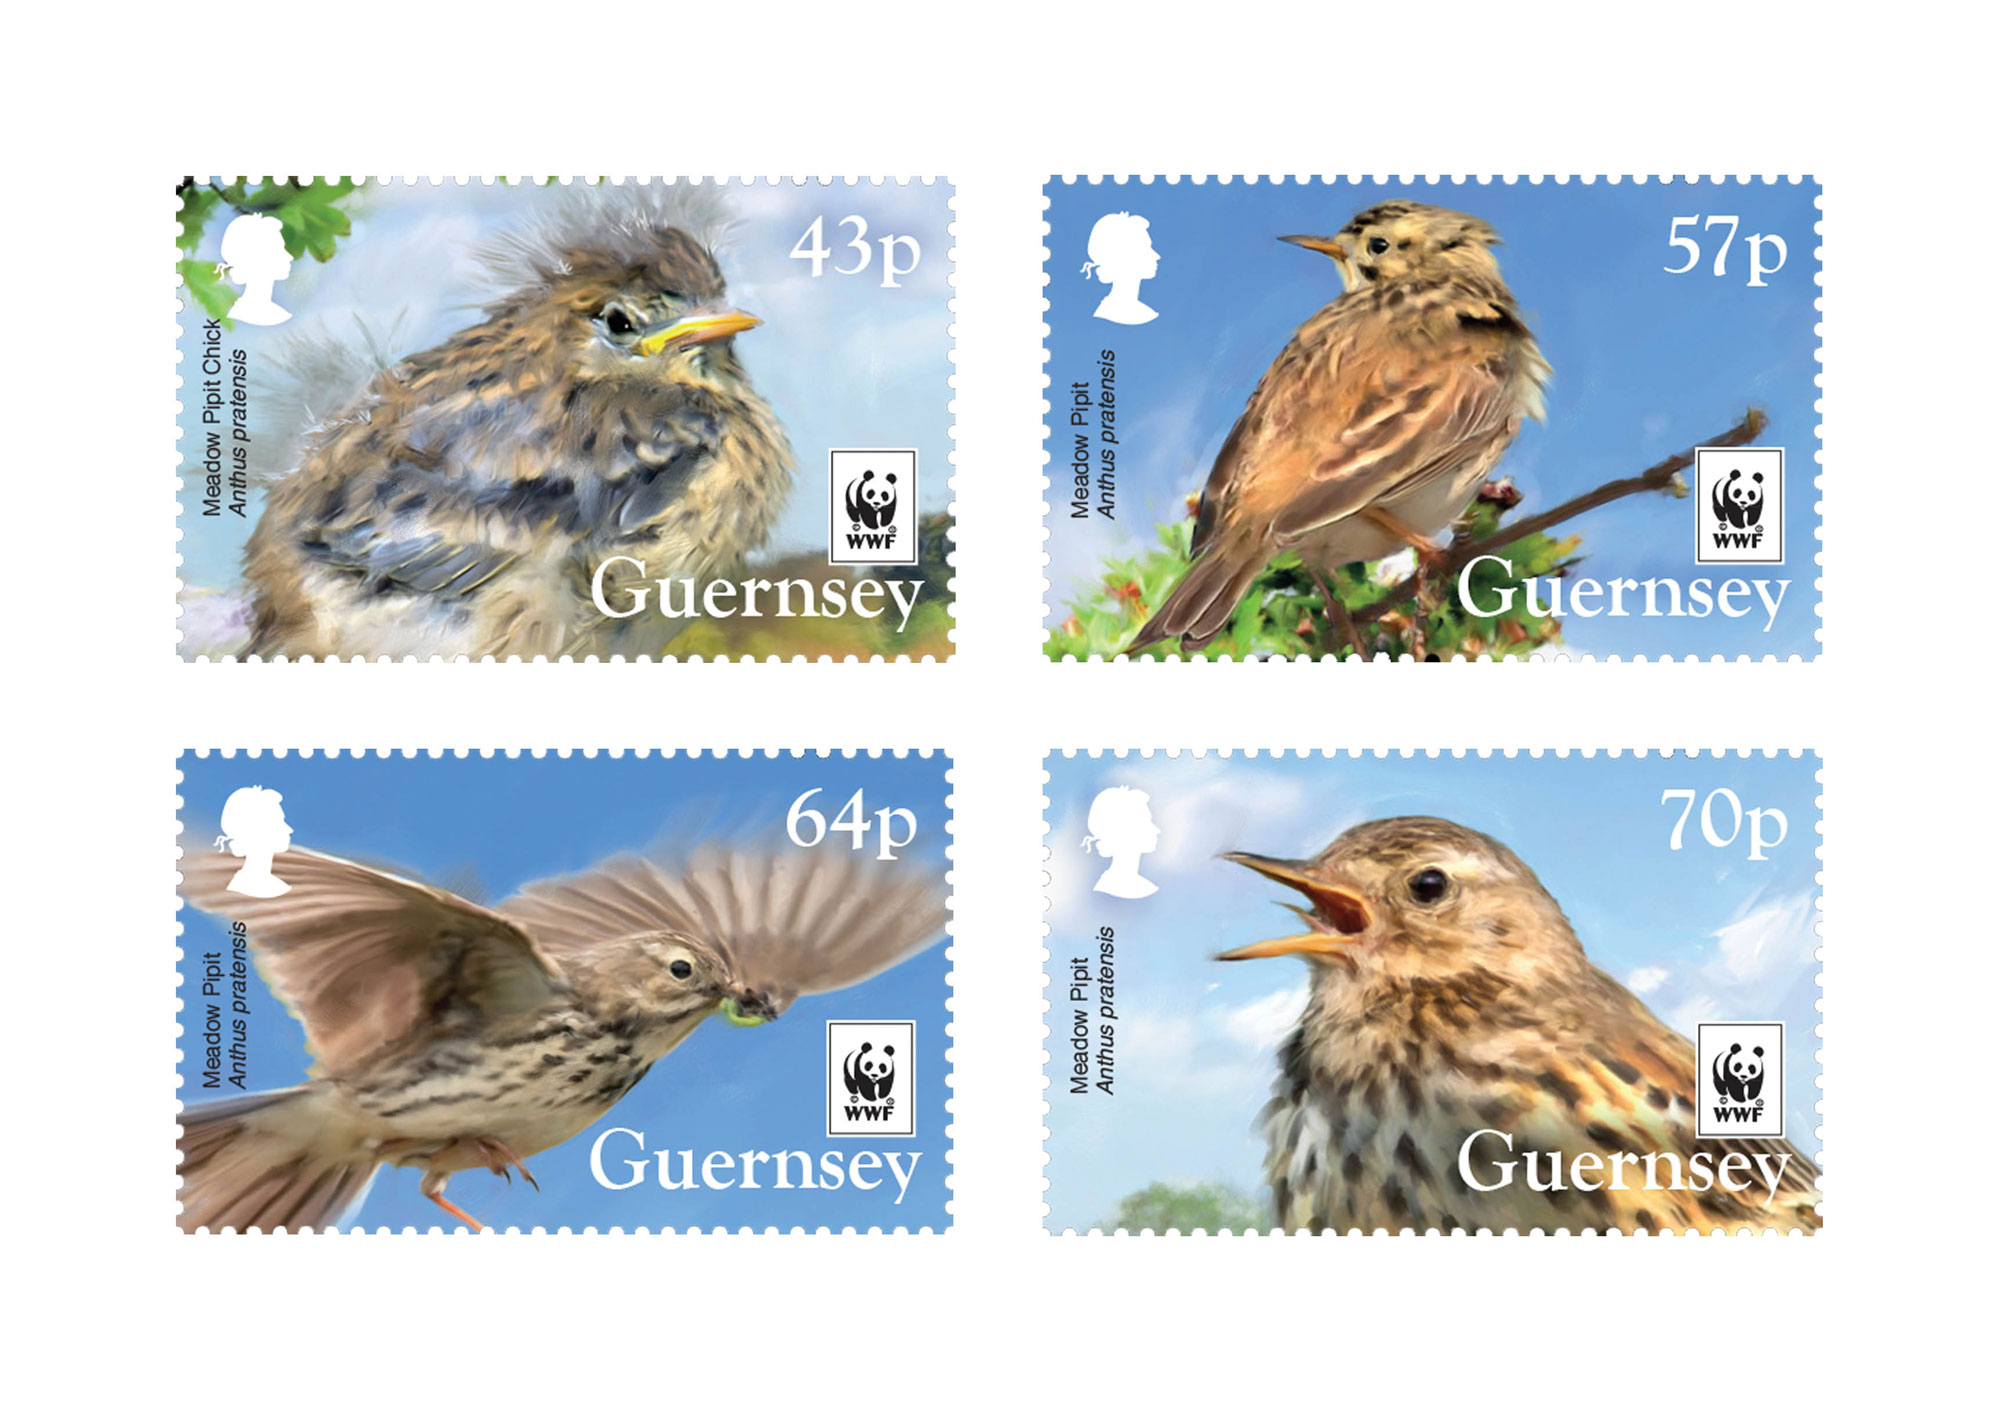 2017 WWFMeadow Pipit Set of 4